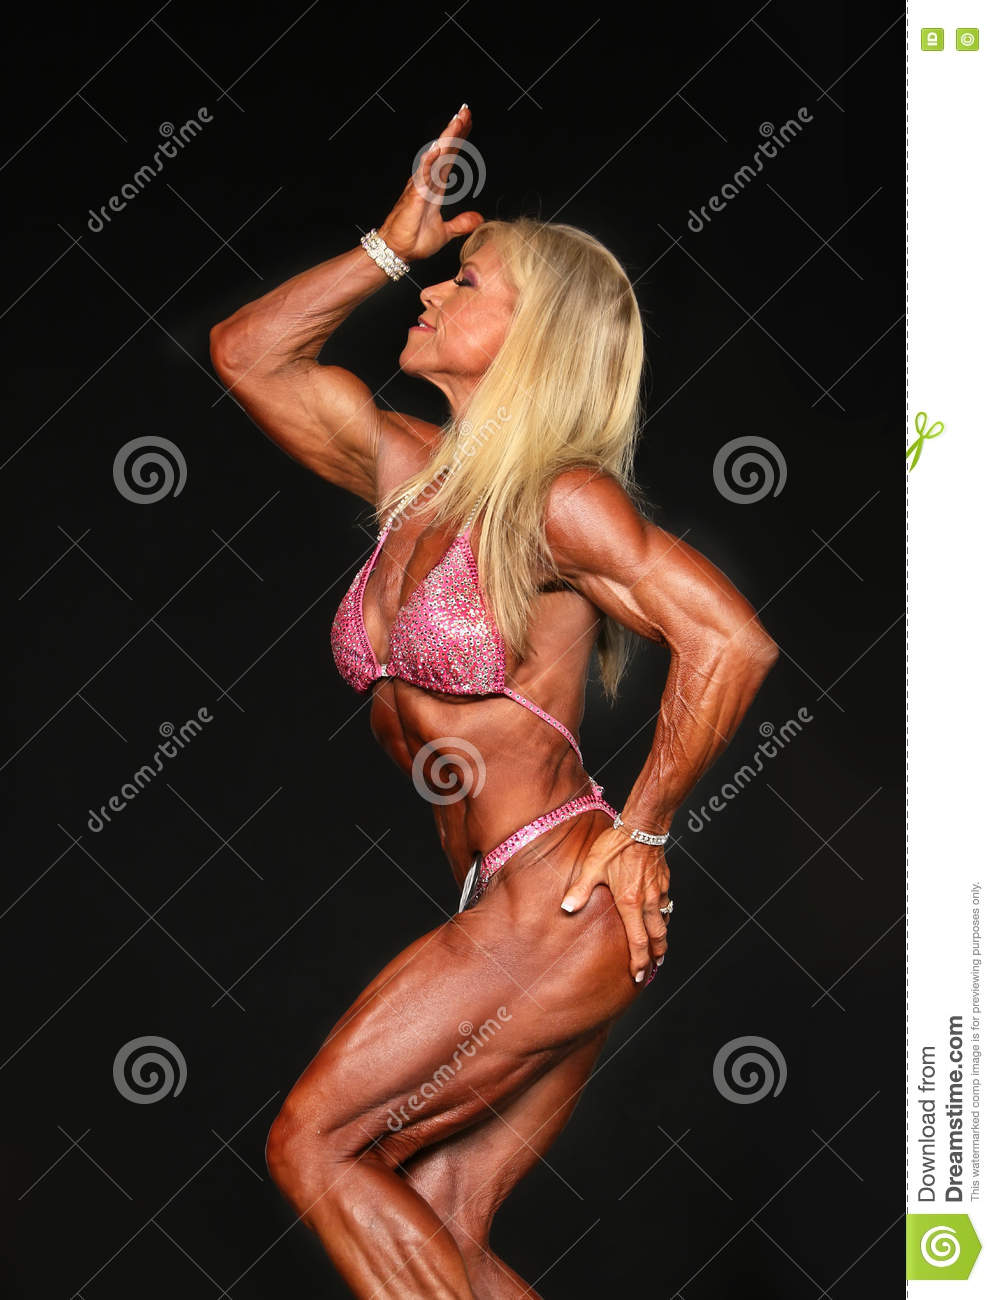 Muscle women mature